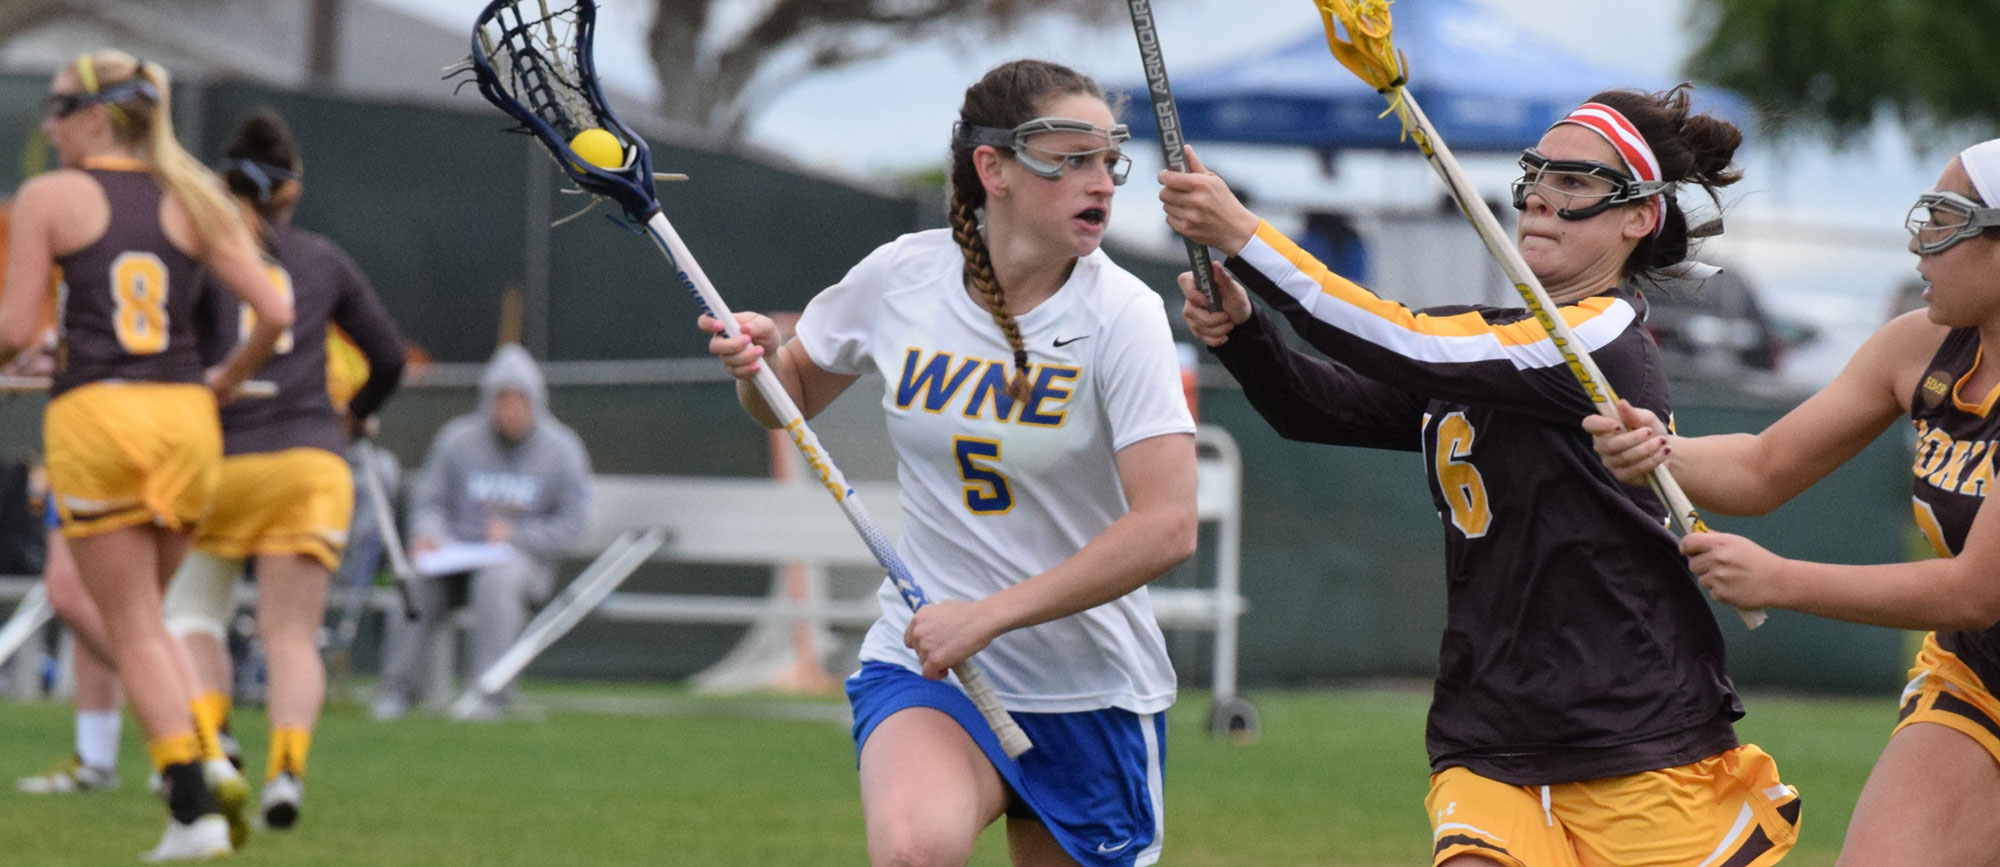 Mount Holyoke Rallies Late to Earn 14-13 Victory Over Western New England